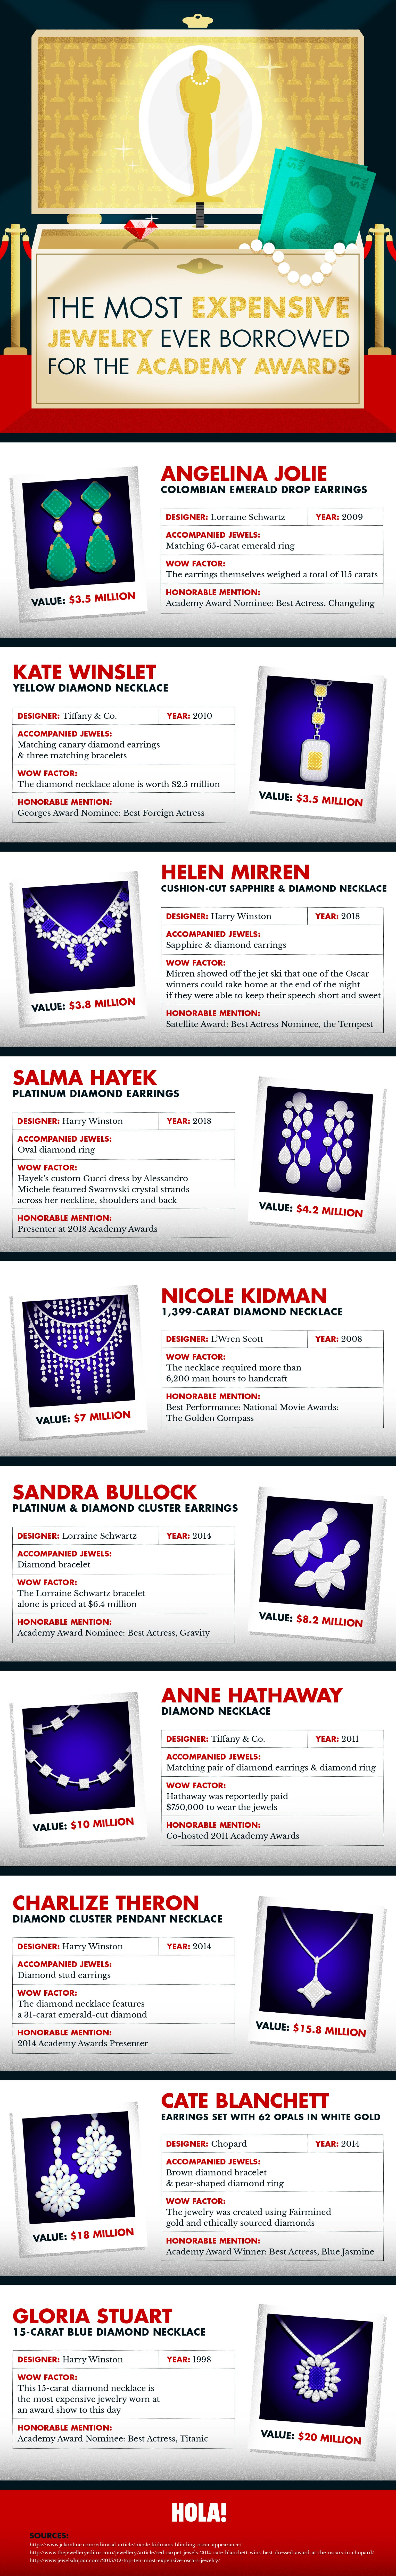 HOLA-the-most-expensive-jewelry-ever-borrowed-for-the-academy-awards-infographic.jpg